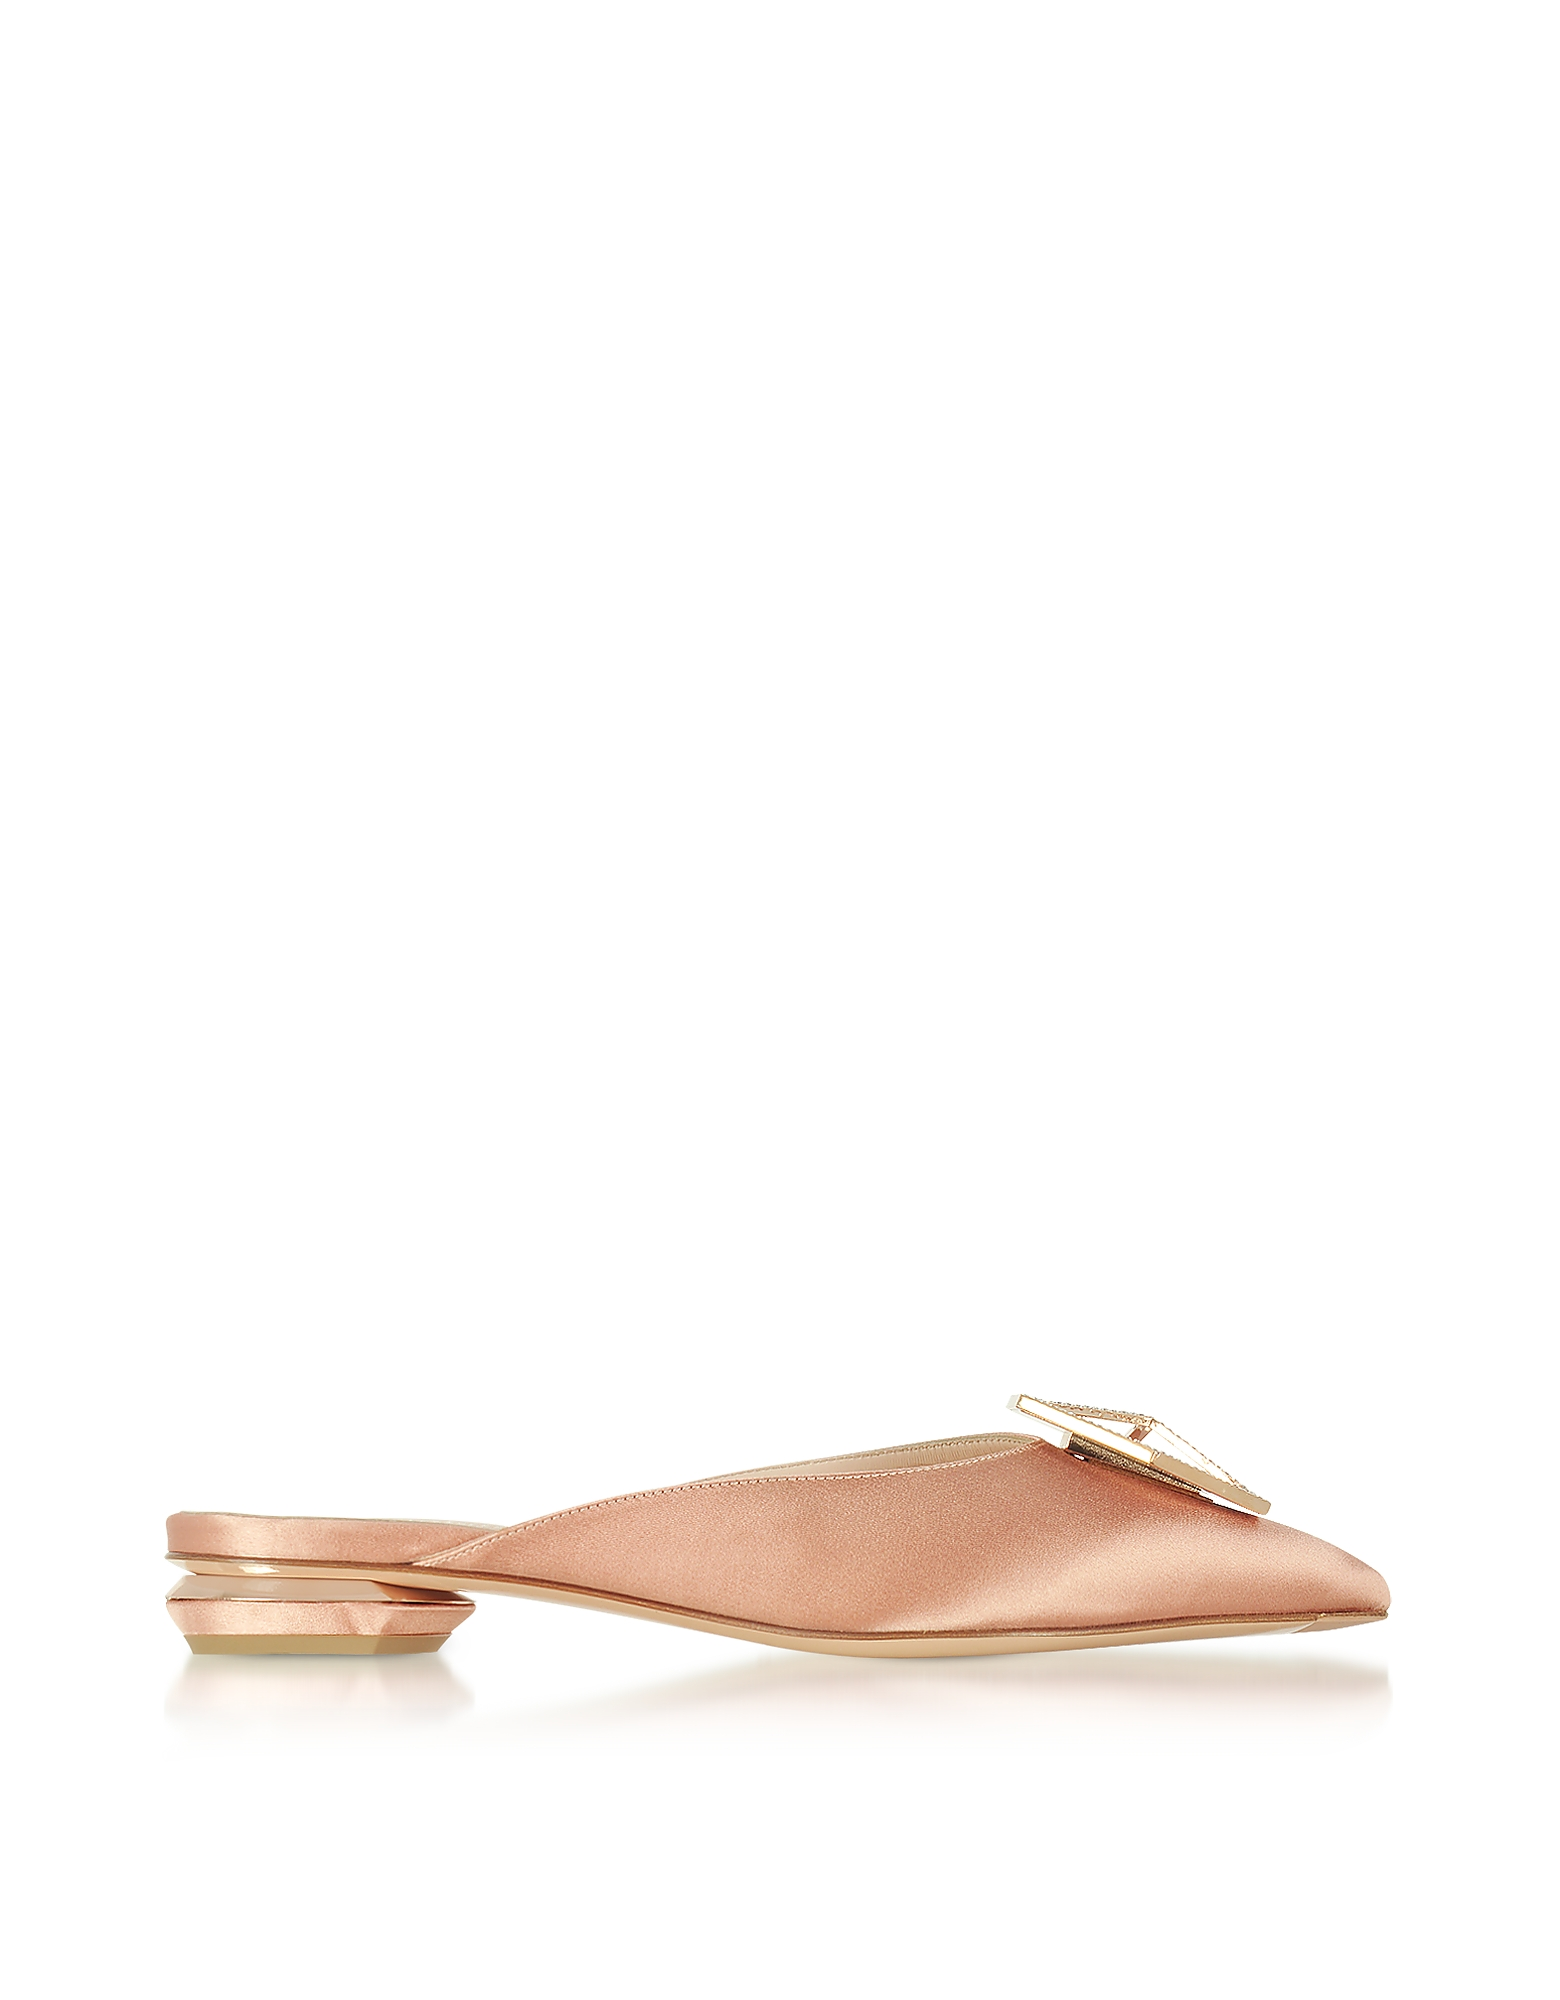 Nicholas Kirkwood Shoes, Eden Clay Satin Jewel Mule